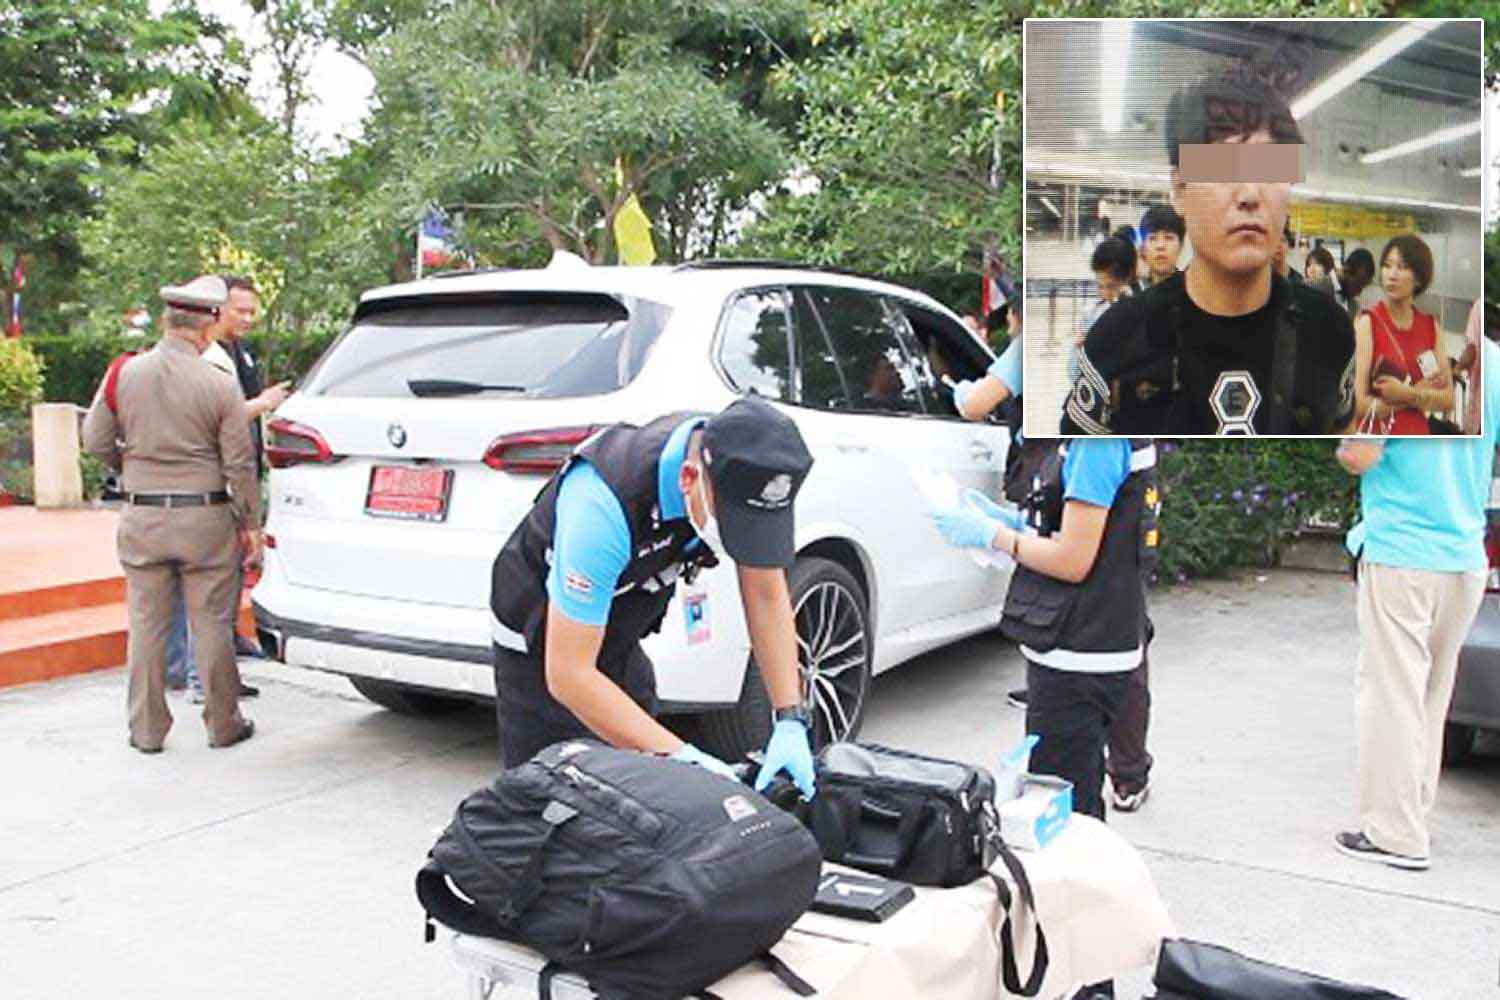 Police comb the victim's white BMW X5 for evidence at the Pattaya tourist police station  on Friday. Inset is the South Korean man suspected of attacking the vehicle's owner,  stabbing him 17 times and making off with 900,000 baht. (Photos: Chaiyot Pupattanapong)